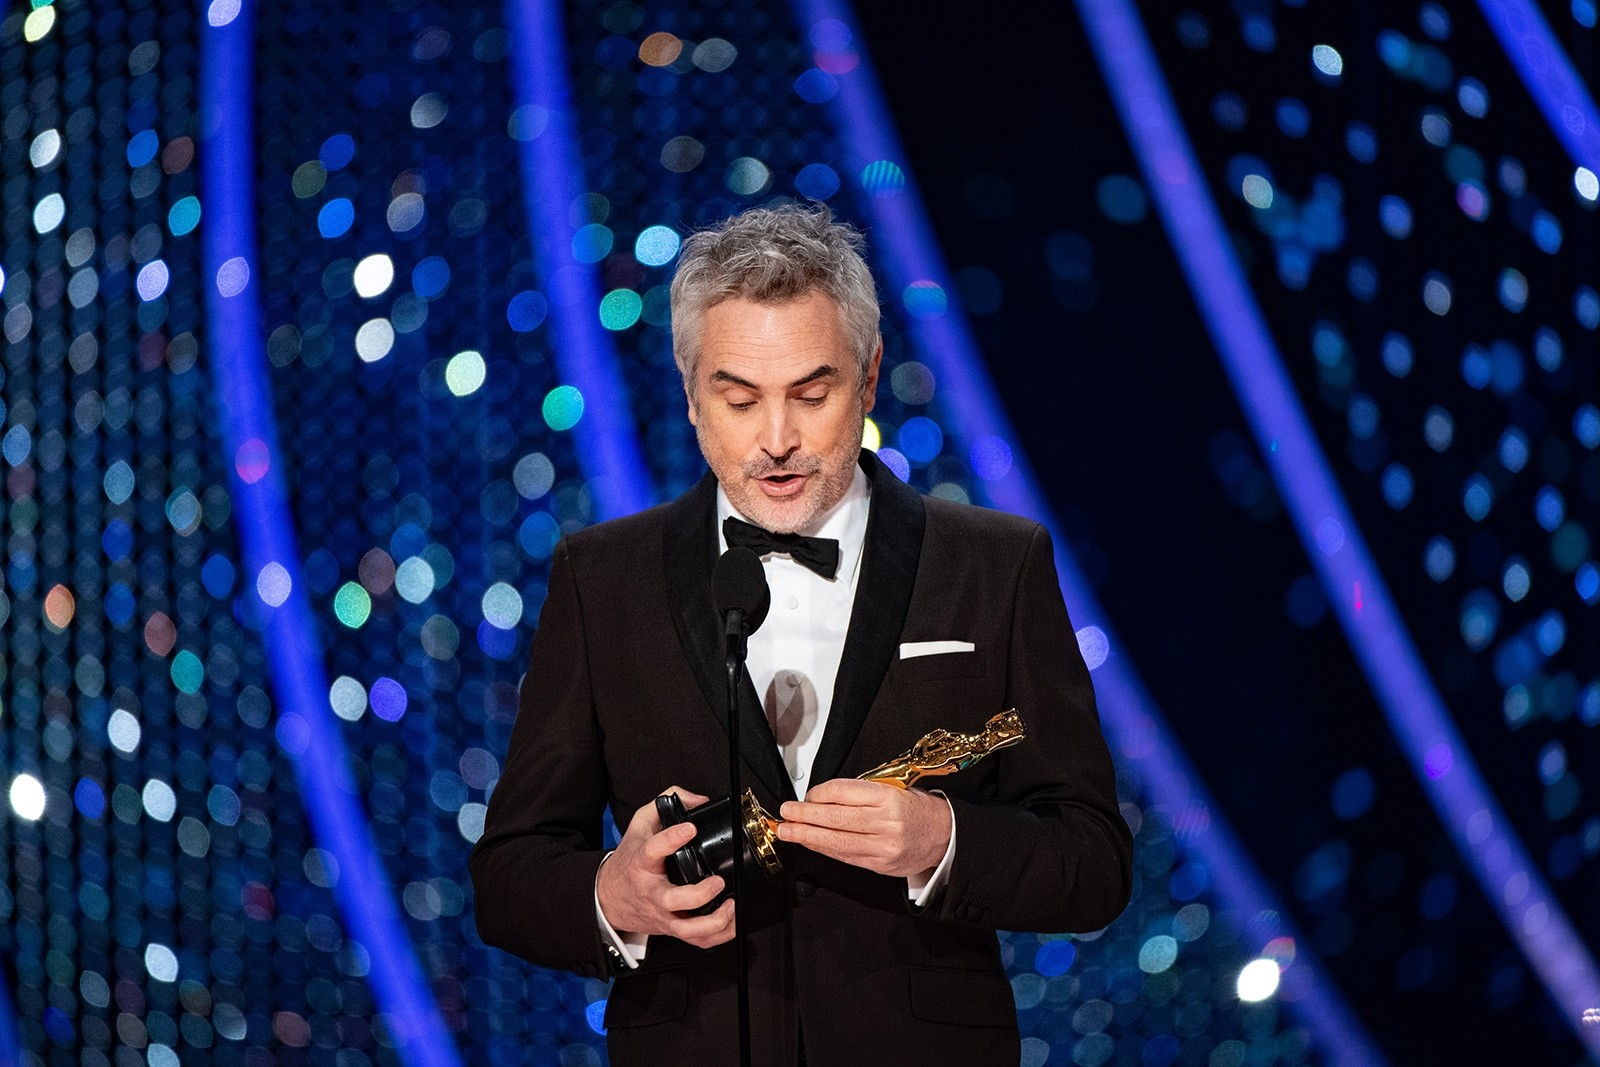 Alfonso Cuaron accepts the Oscar for achievement in cinematography during the 91st annual Academy Awards ceremony at the Dolby Theatre in Hollywood, California, Feb. 24, 2019.